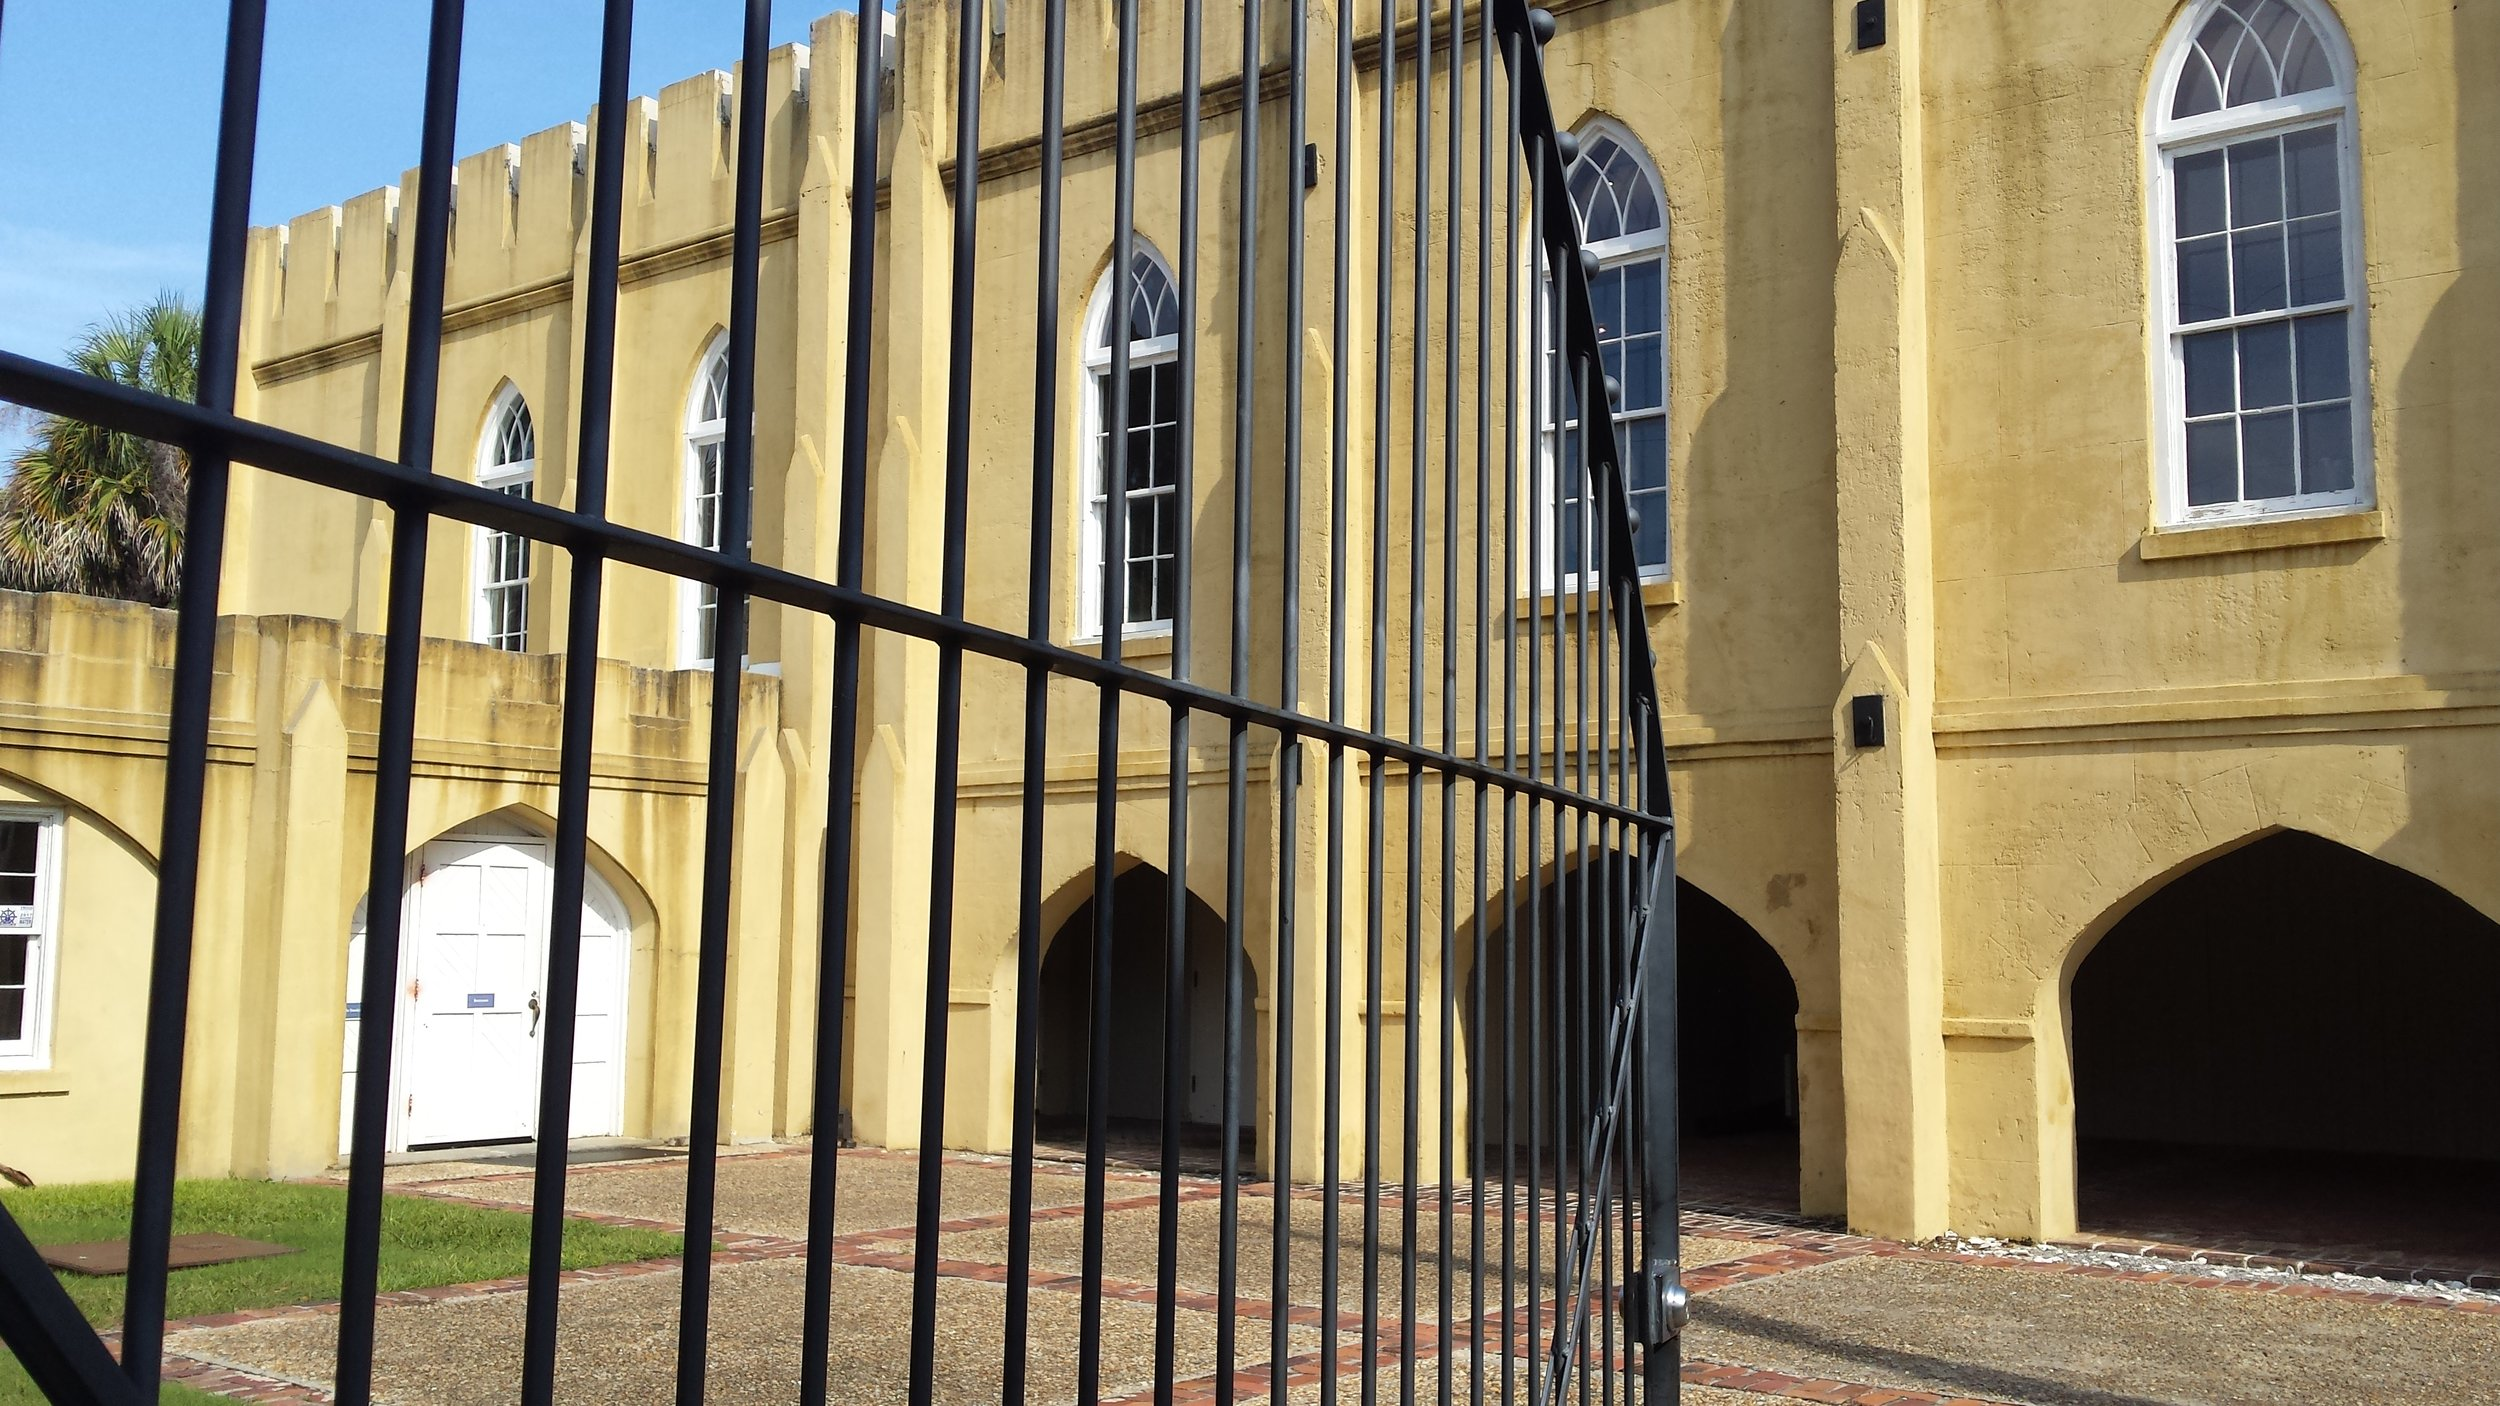 Old Armory at Beaufort South Carolina